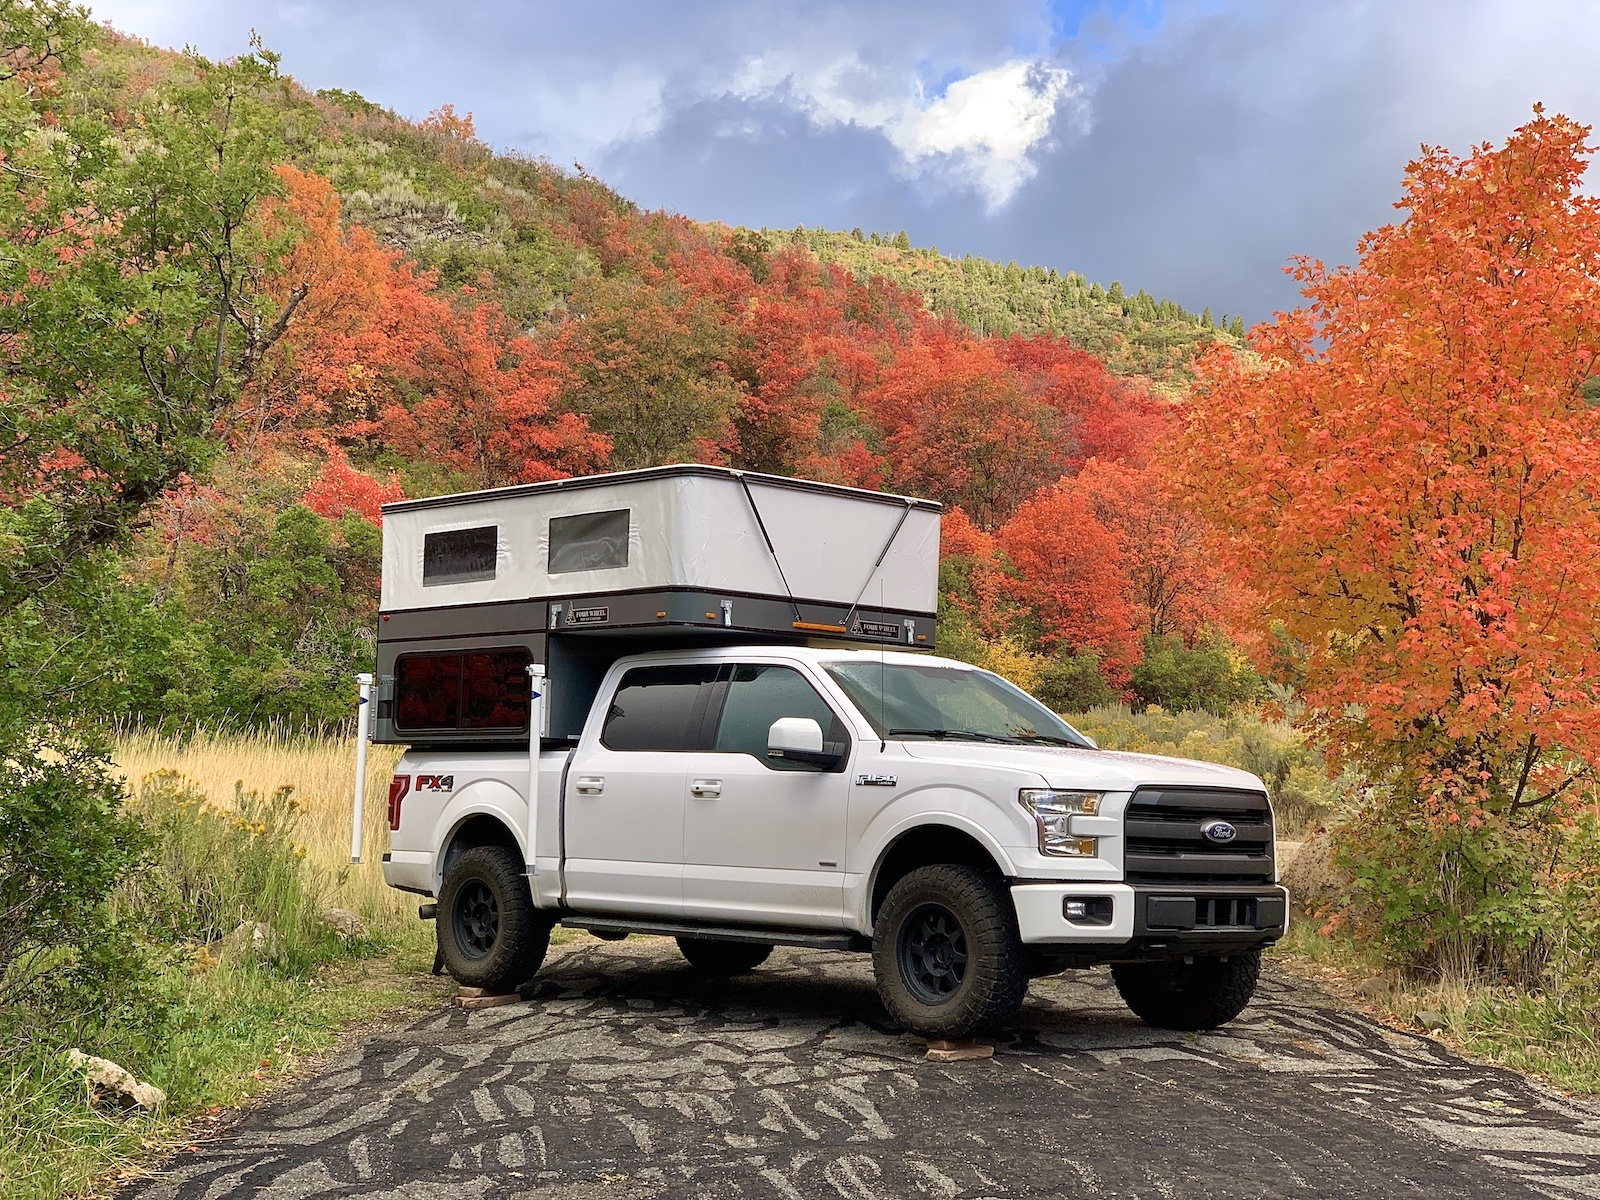 Betty and Clark - A 2015 Ford F-150 and 2019 Four Wheel Campers Raven, the perfect set up for outdoor adventures and photography.